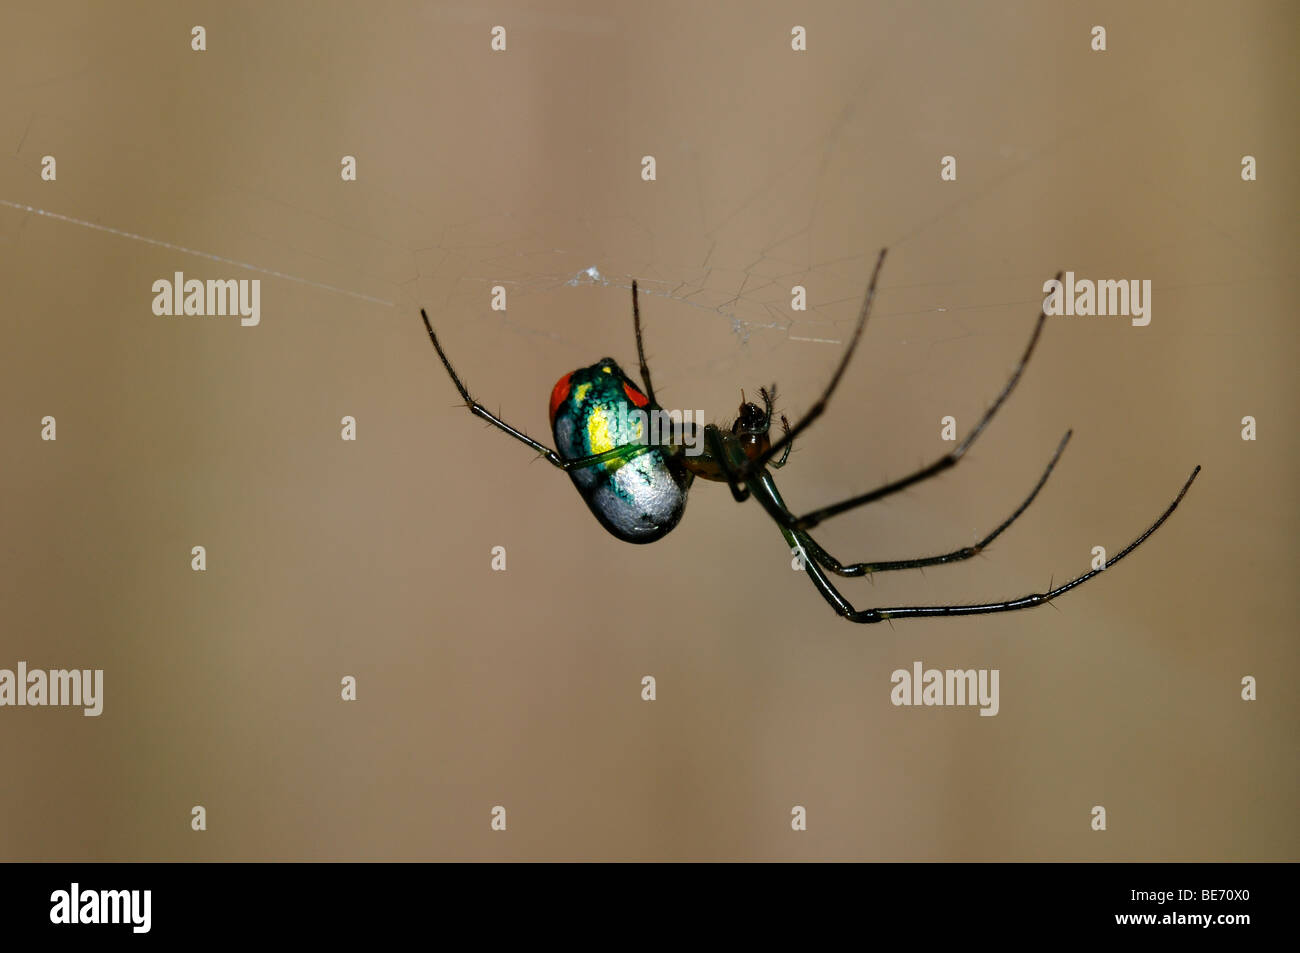 A colorful Orchard orbweaver spider. Texas, USA. - Stock Image